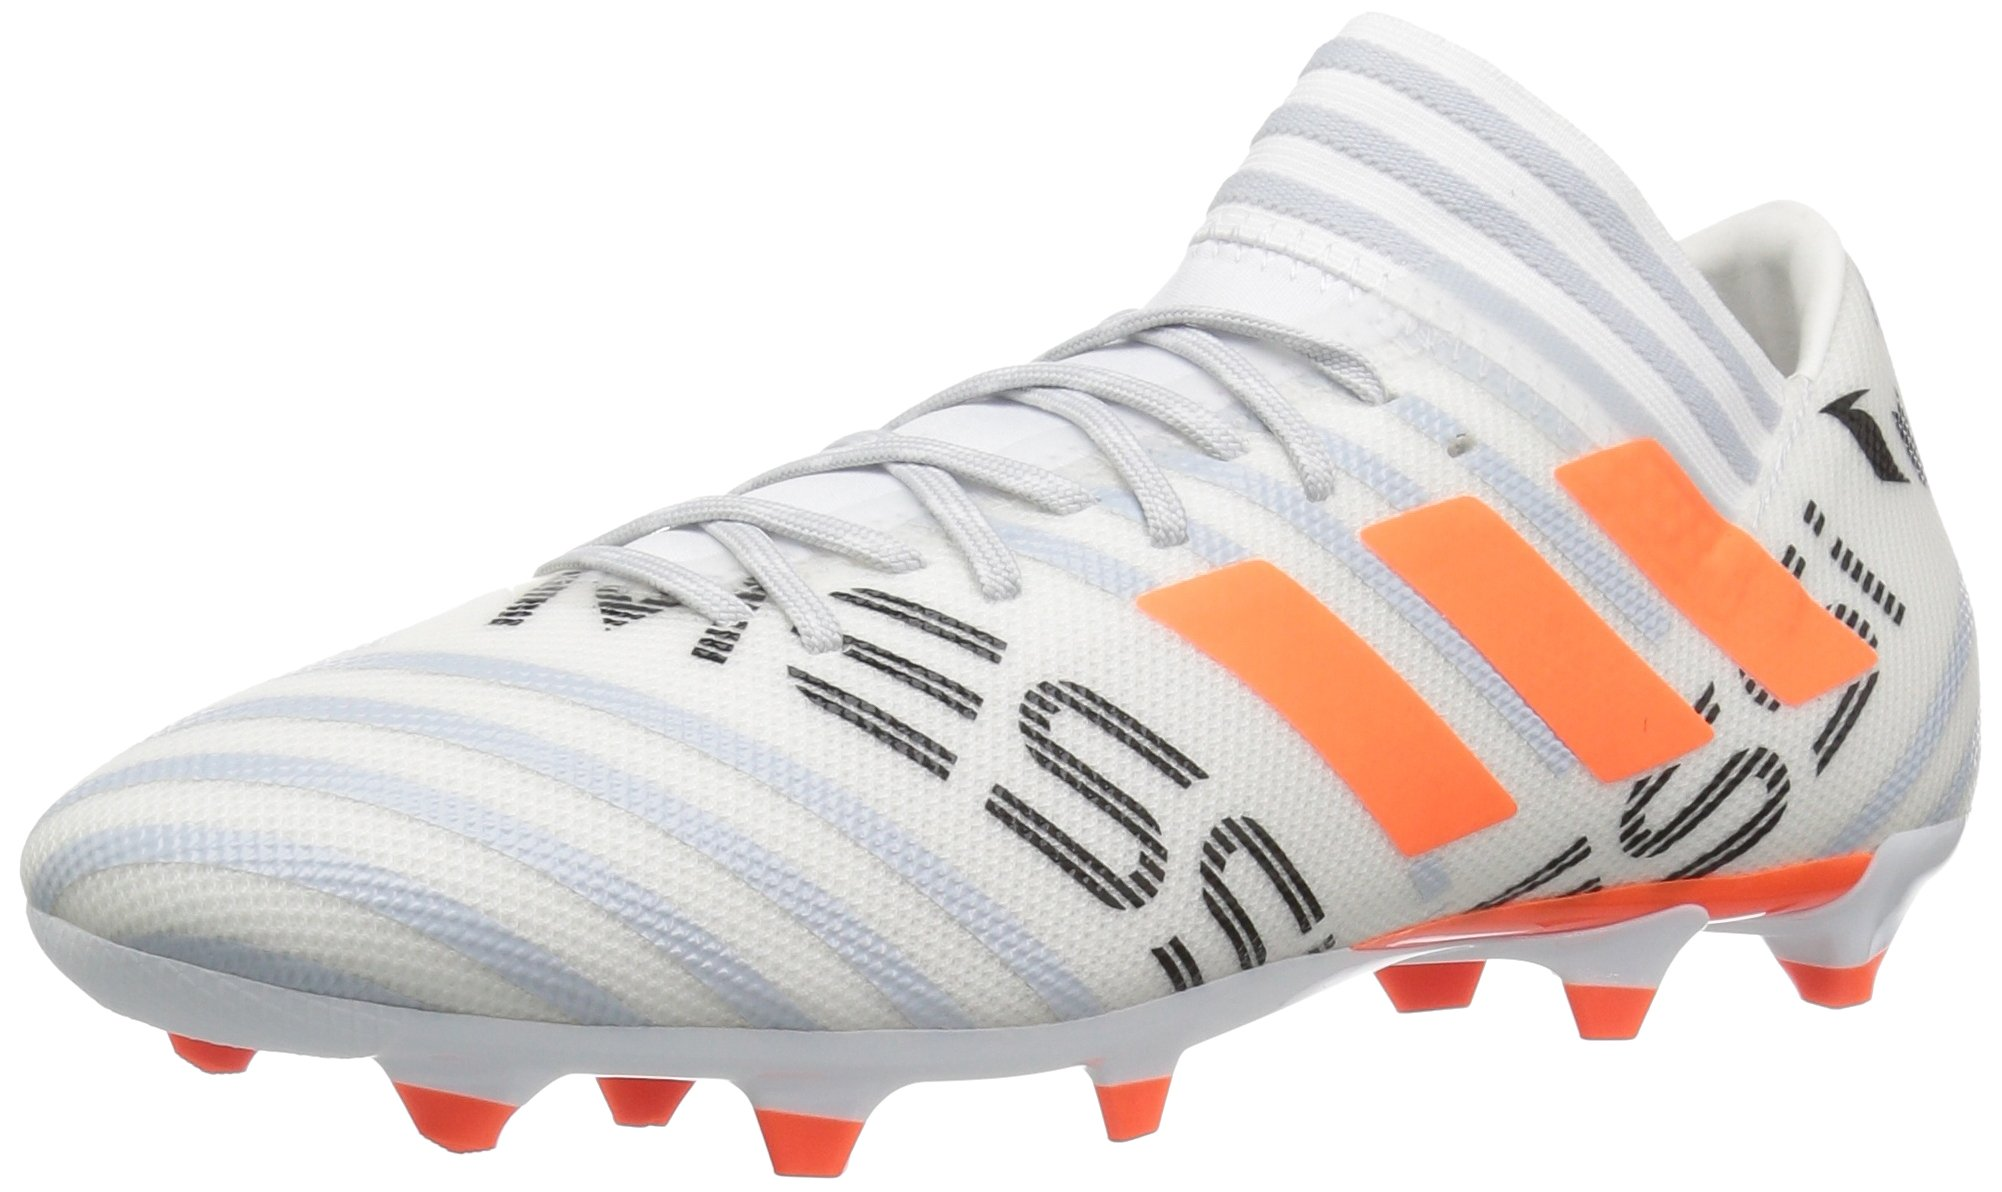 best website 335bf d9d26 Galleon - Adidas Men s Nemeziz Messi 17.3 FG Soccer Shoe, White Solar  Orange Clear Grey, 8.5 Medium US